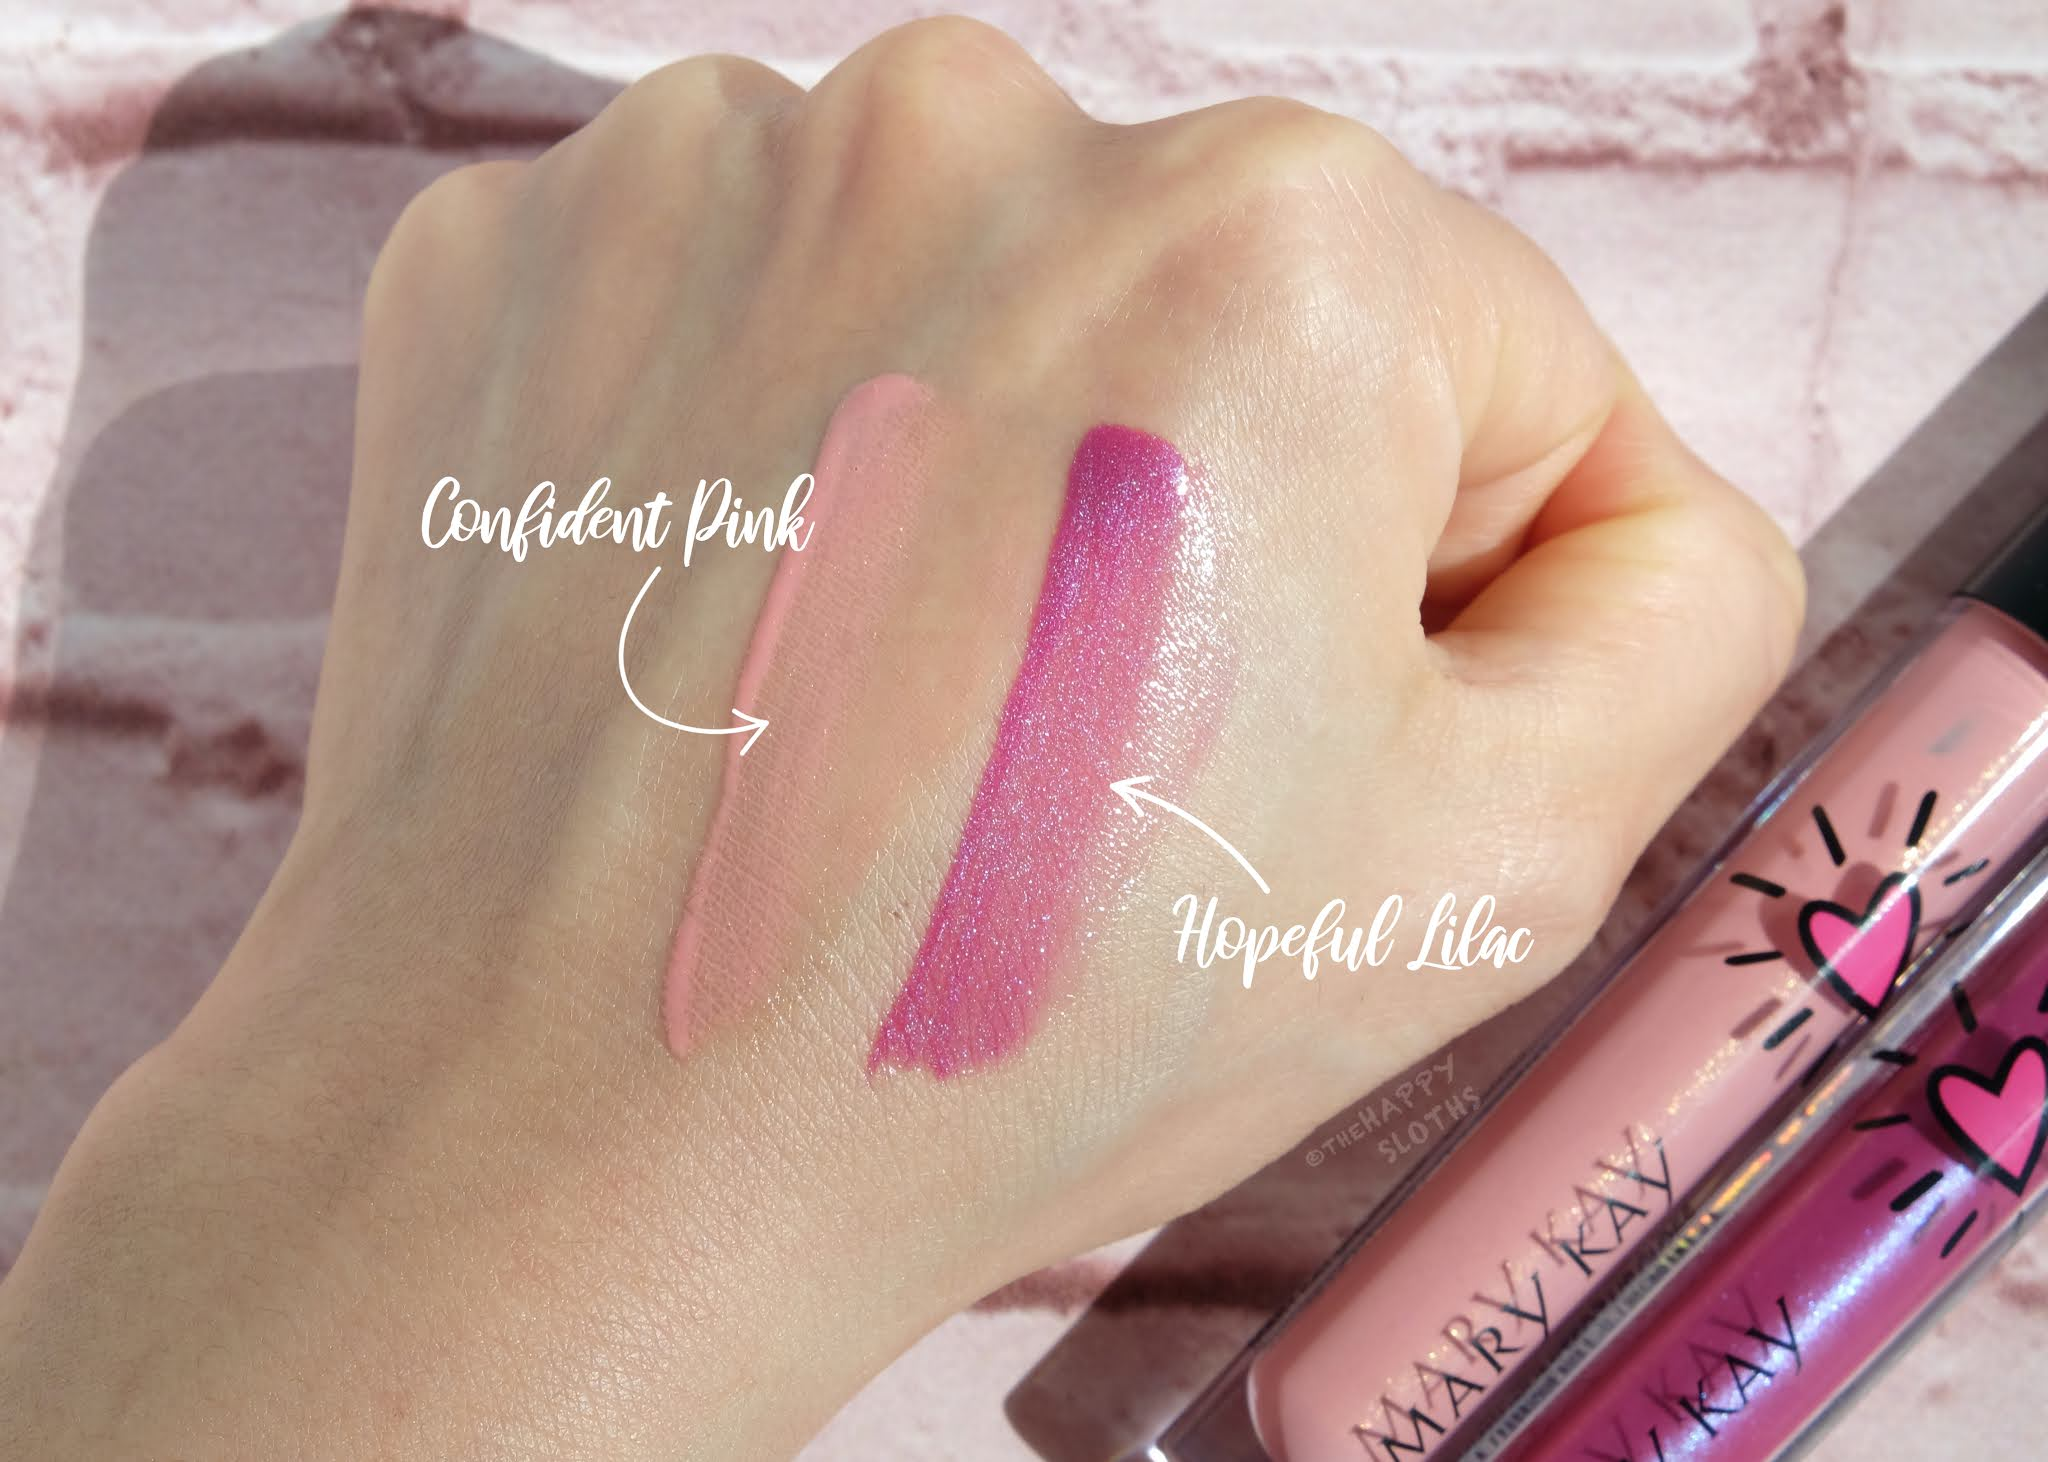 """Mary Kay   Limited Edition Unlimited Lip Gloss in """"Confident Pink"""" in """"Hopeful Lilac"""": Review and Swatches"""